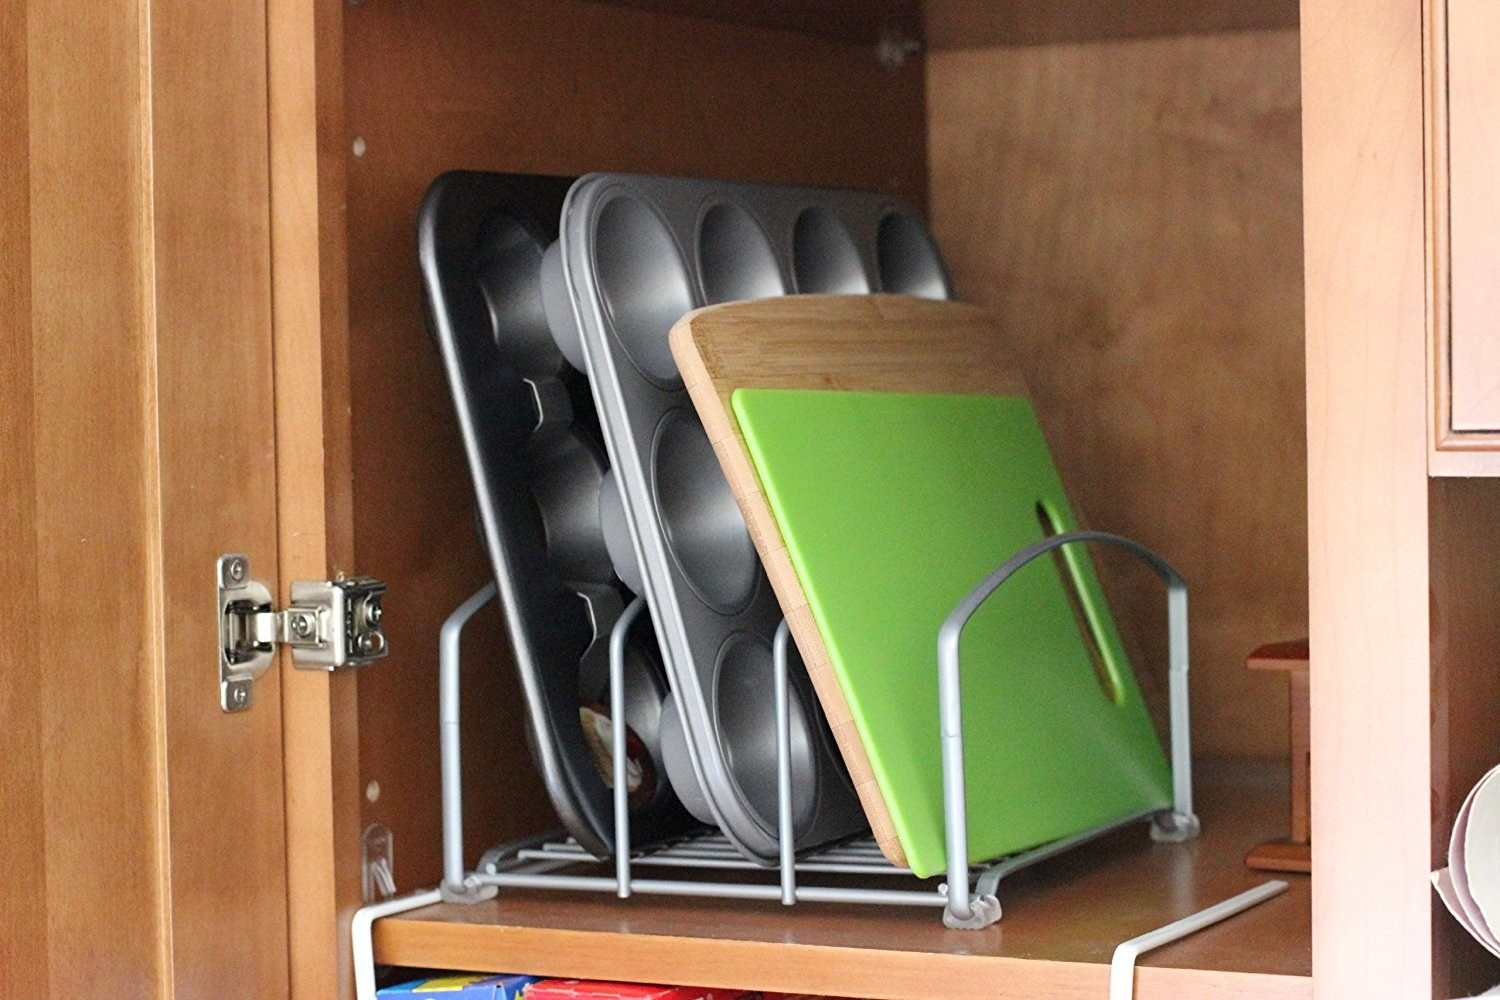 organizer that holds cutting boards and baking pans vertically in cabinet